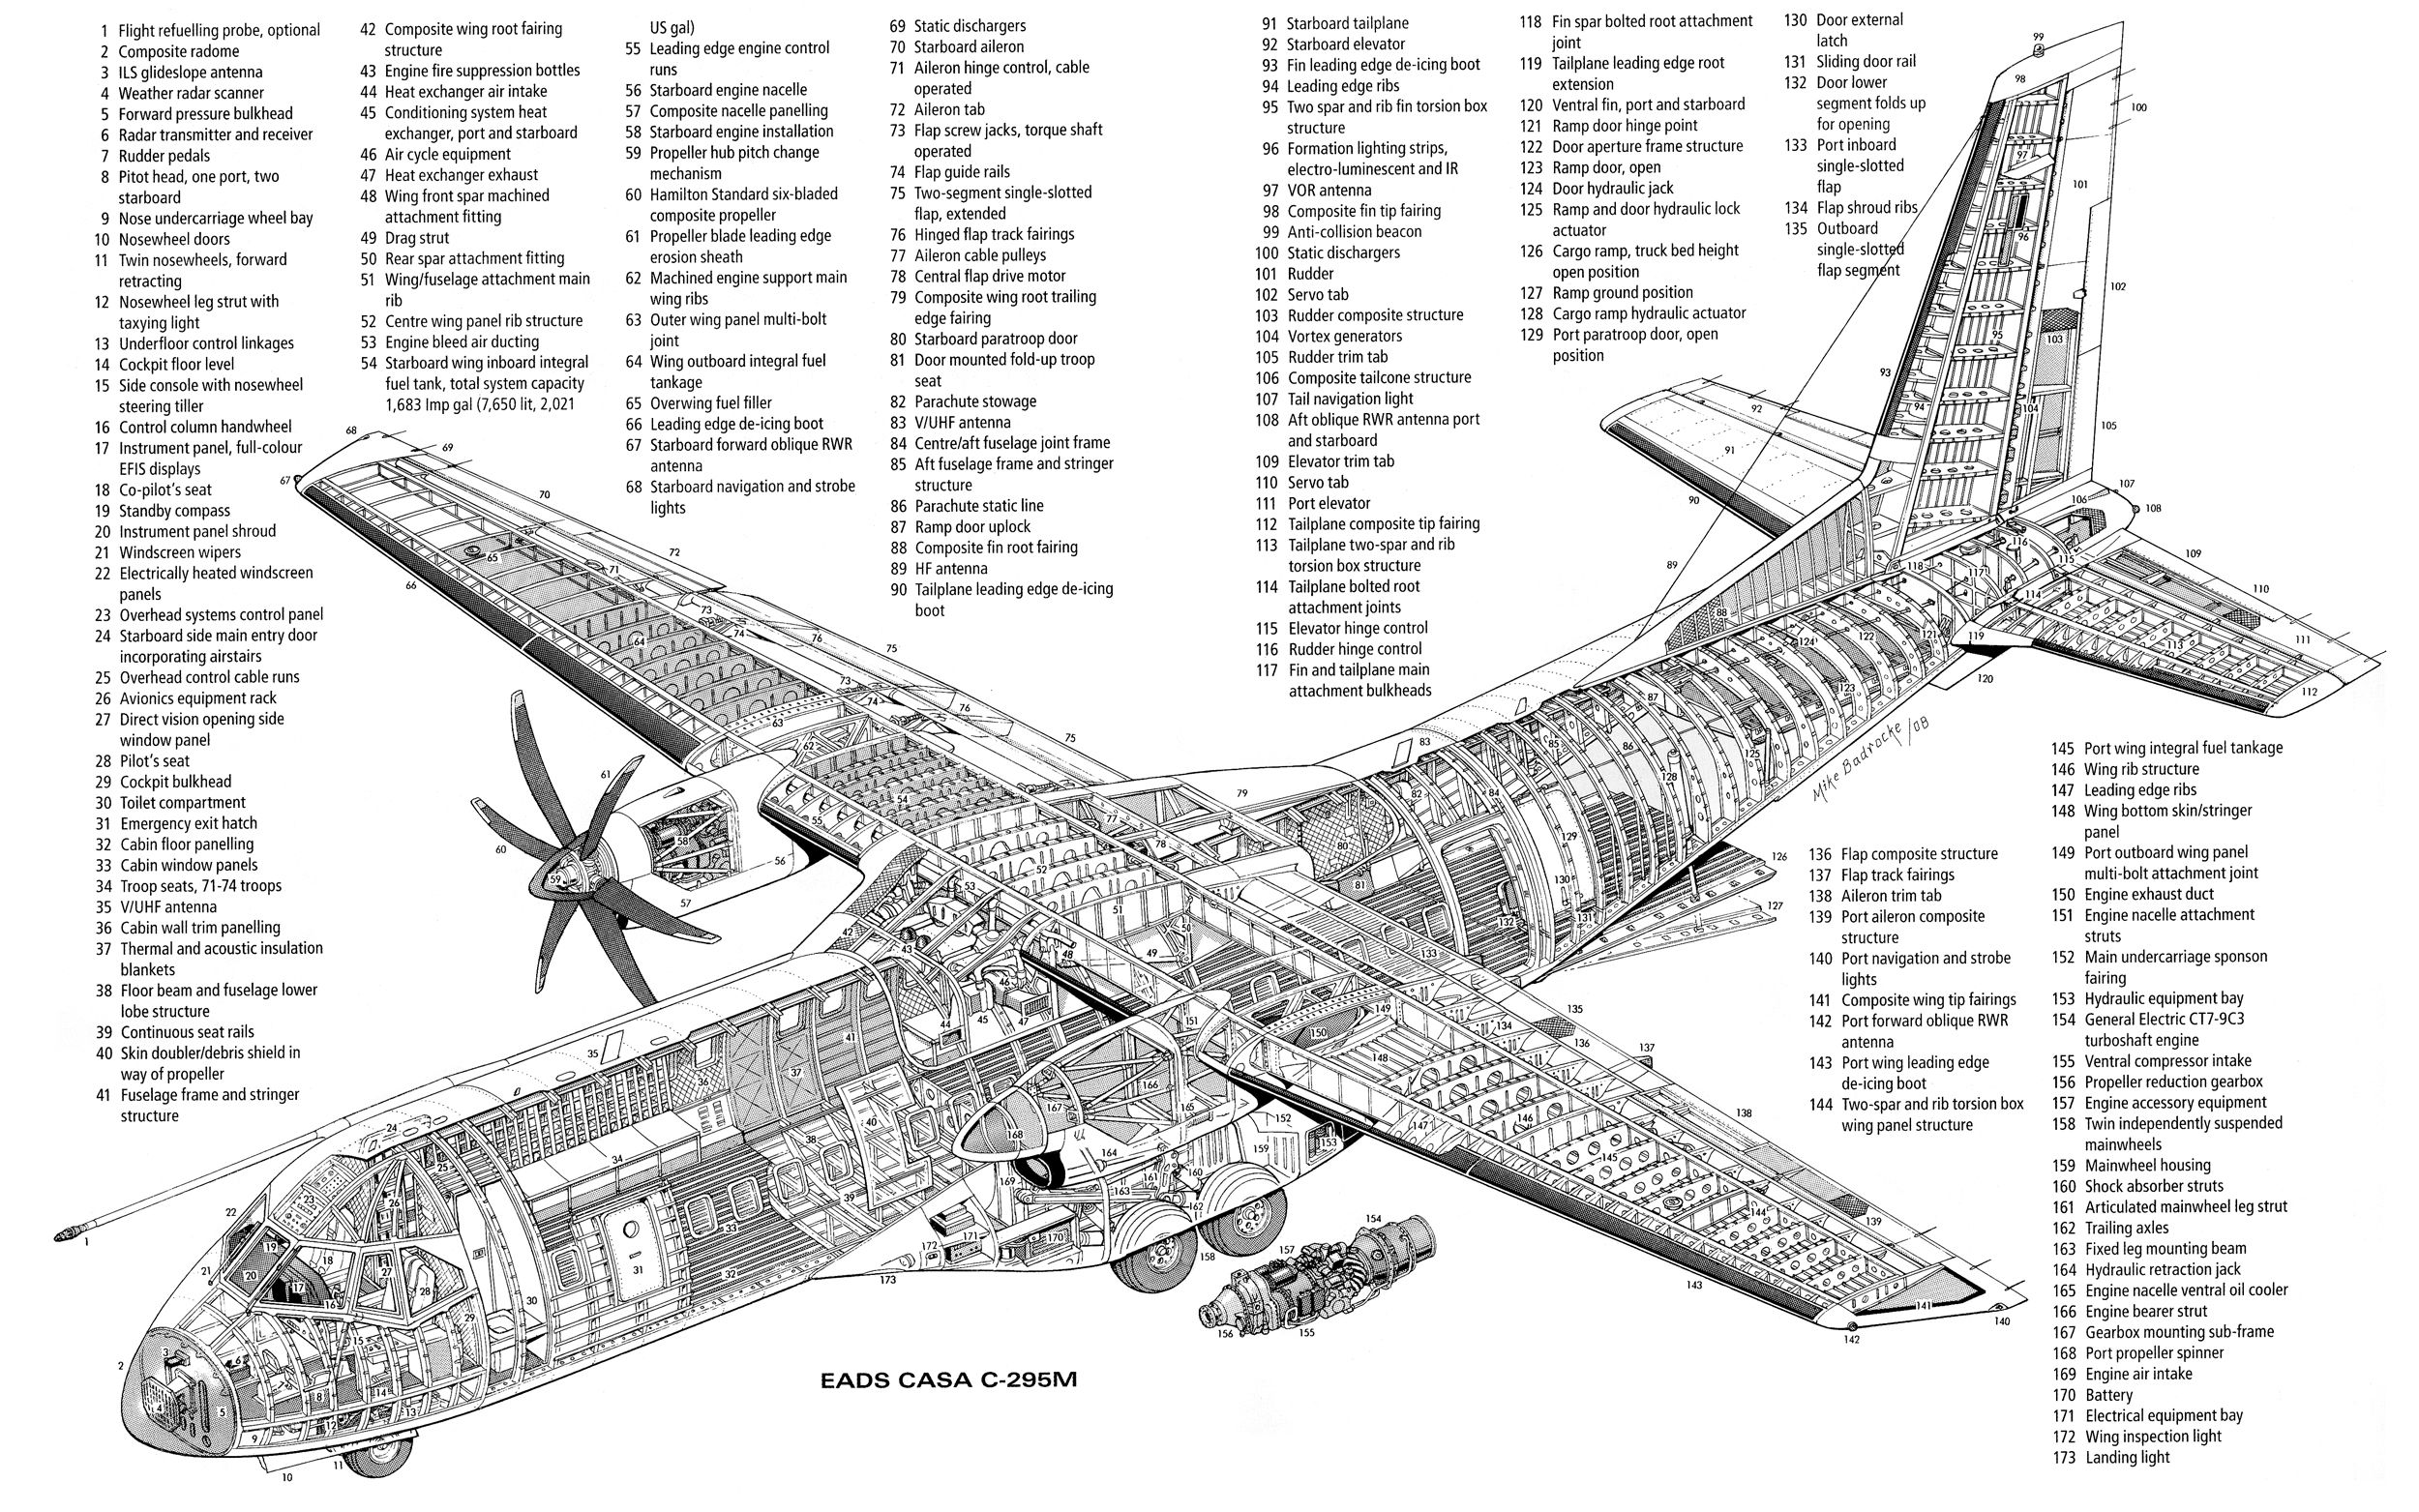 C 130 Cutaway Diagram together with Audi A4 Headlight Switch Wiring Diagram likewise Cfm56 5b Engine Cutaway together with Wiring Diagram For Honda Rancher 350 in addition Nc50 Wiring Diagram. on wiring diagram manual airbus